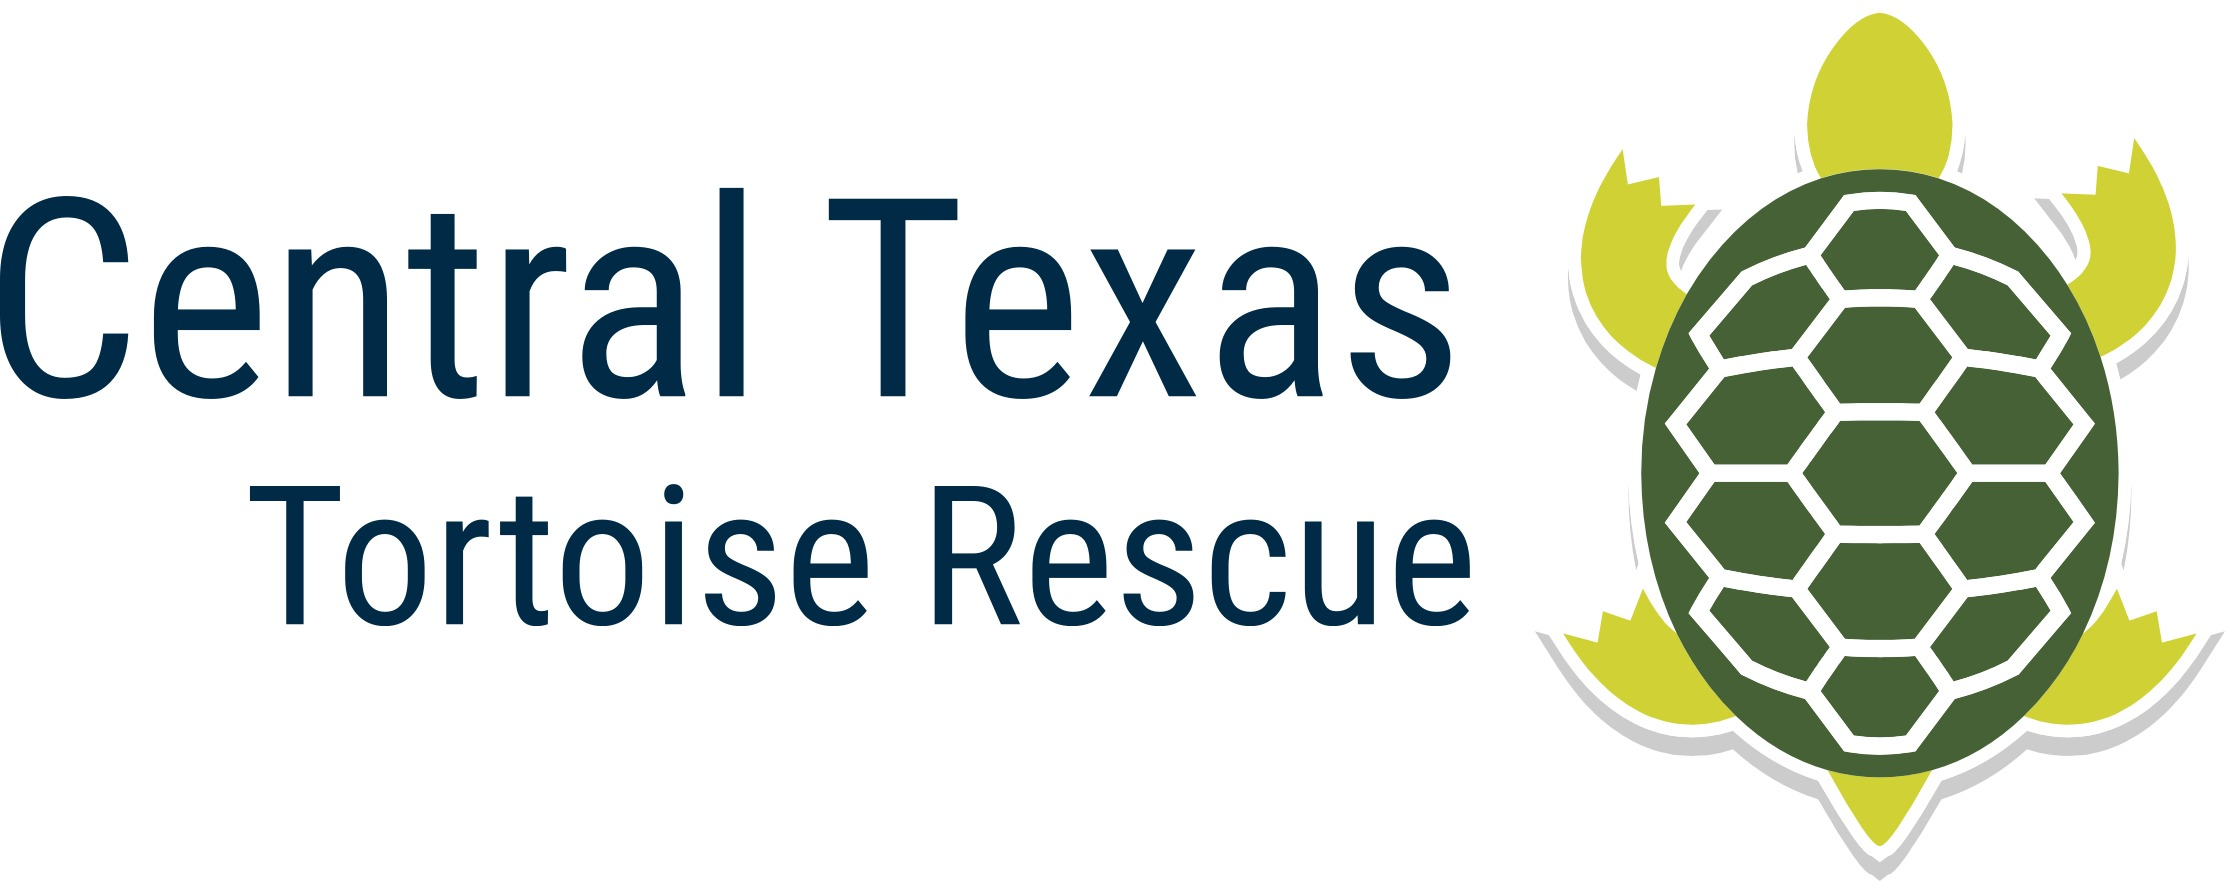 Central Texas Tortoise Rescue